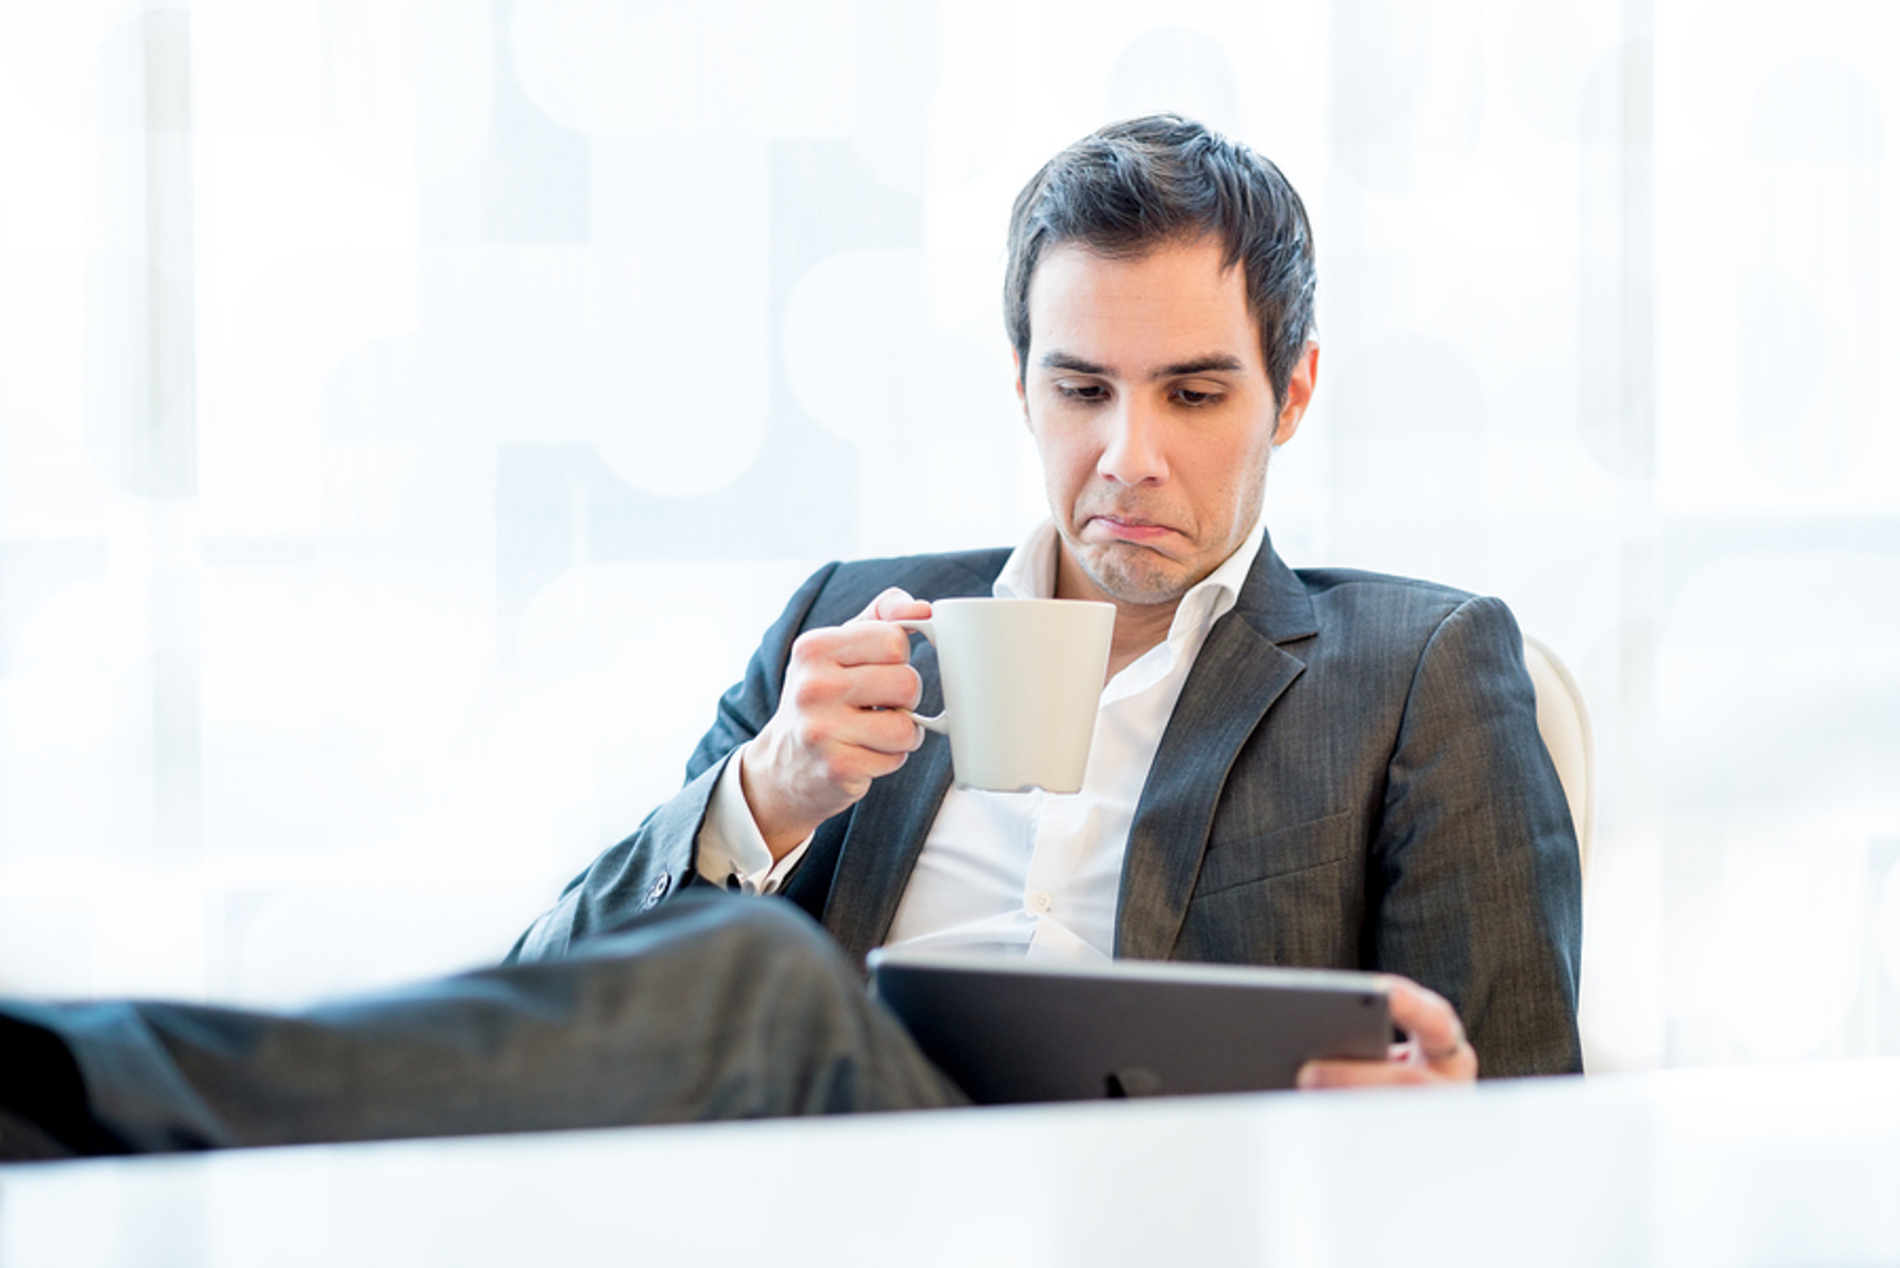 Man looking at his tablet while drinking a coffee.